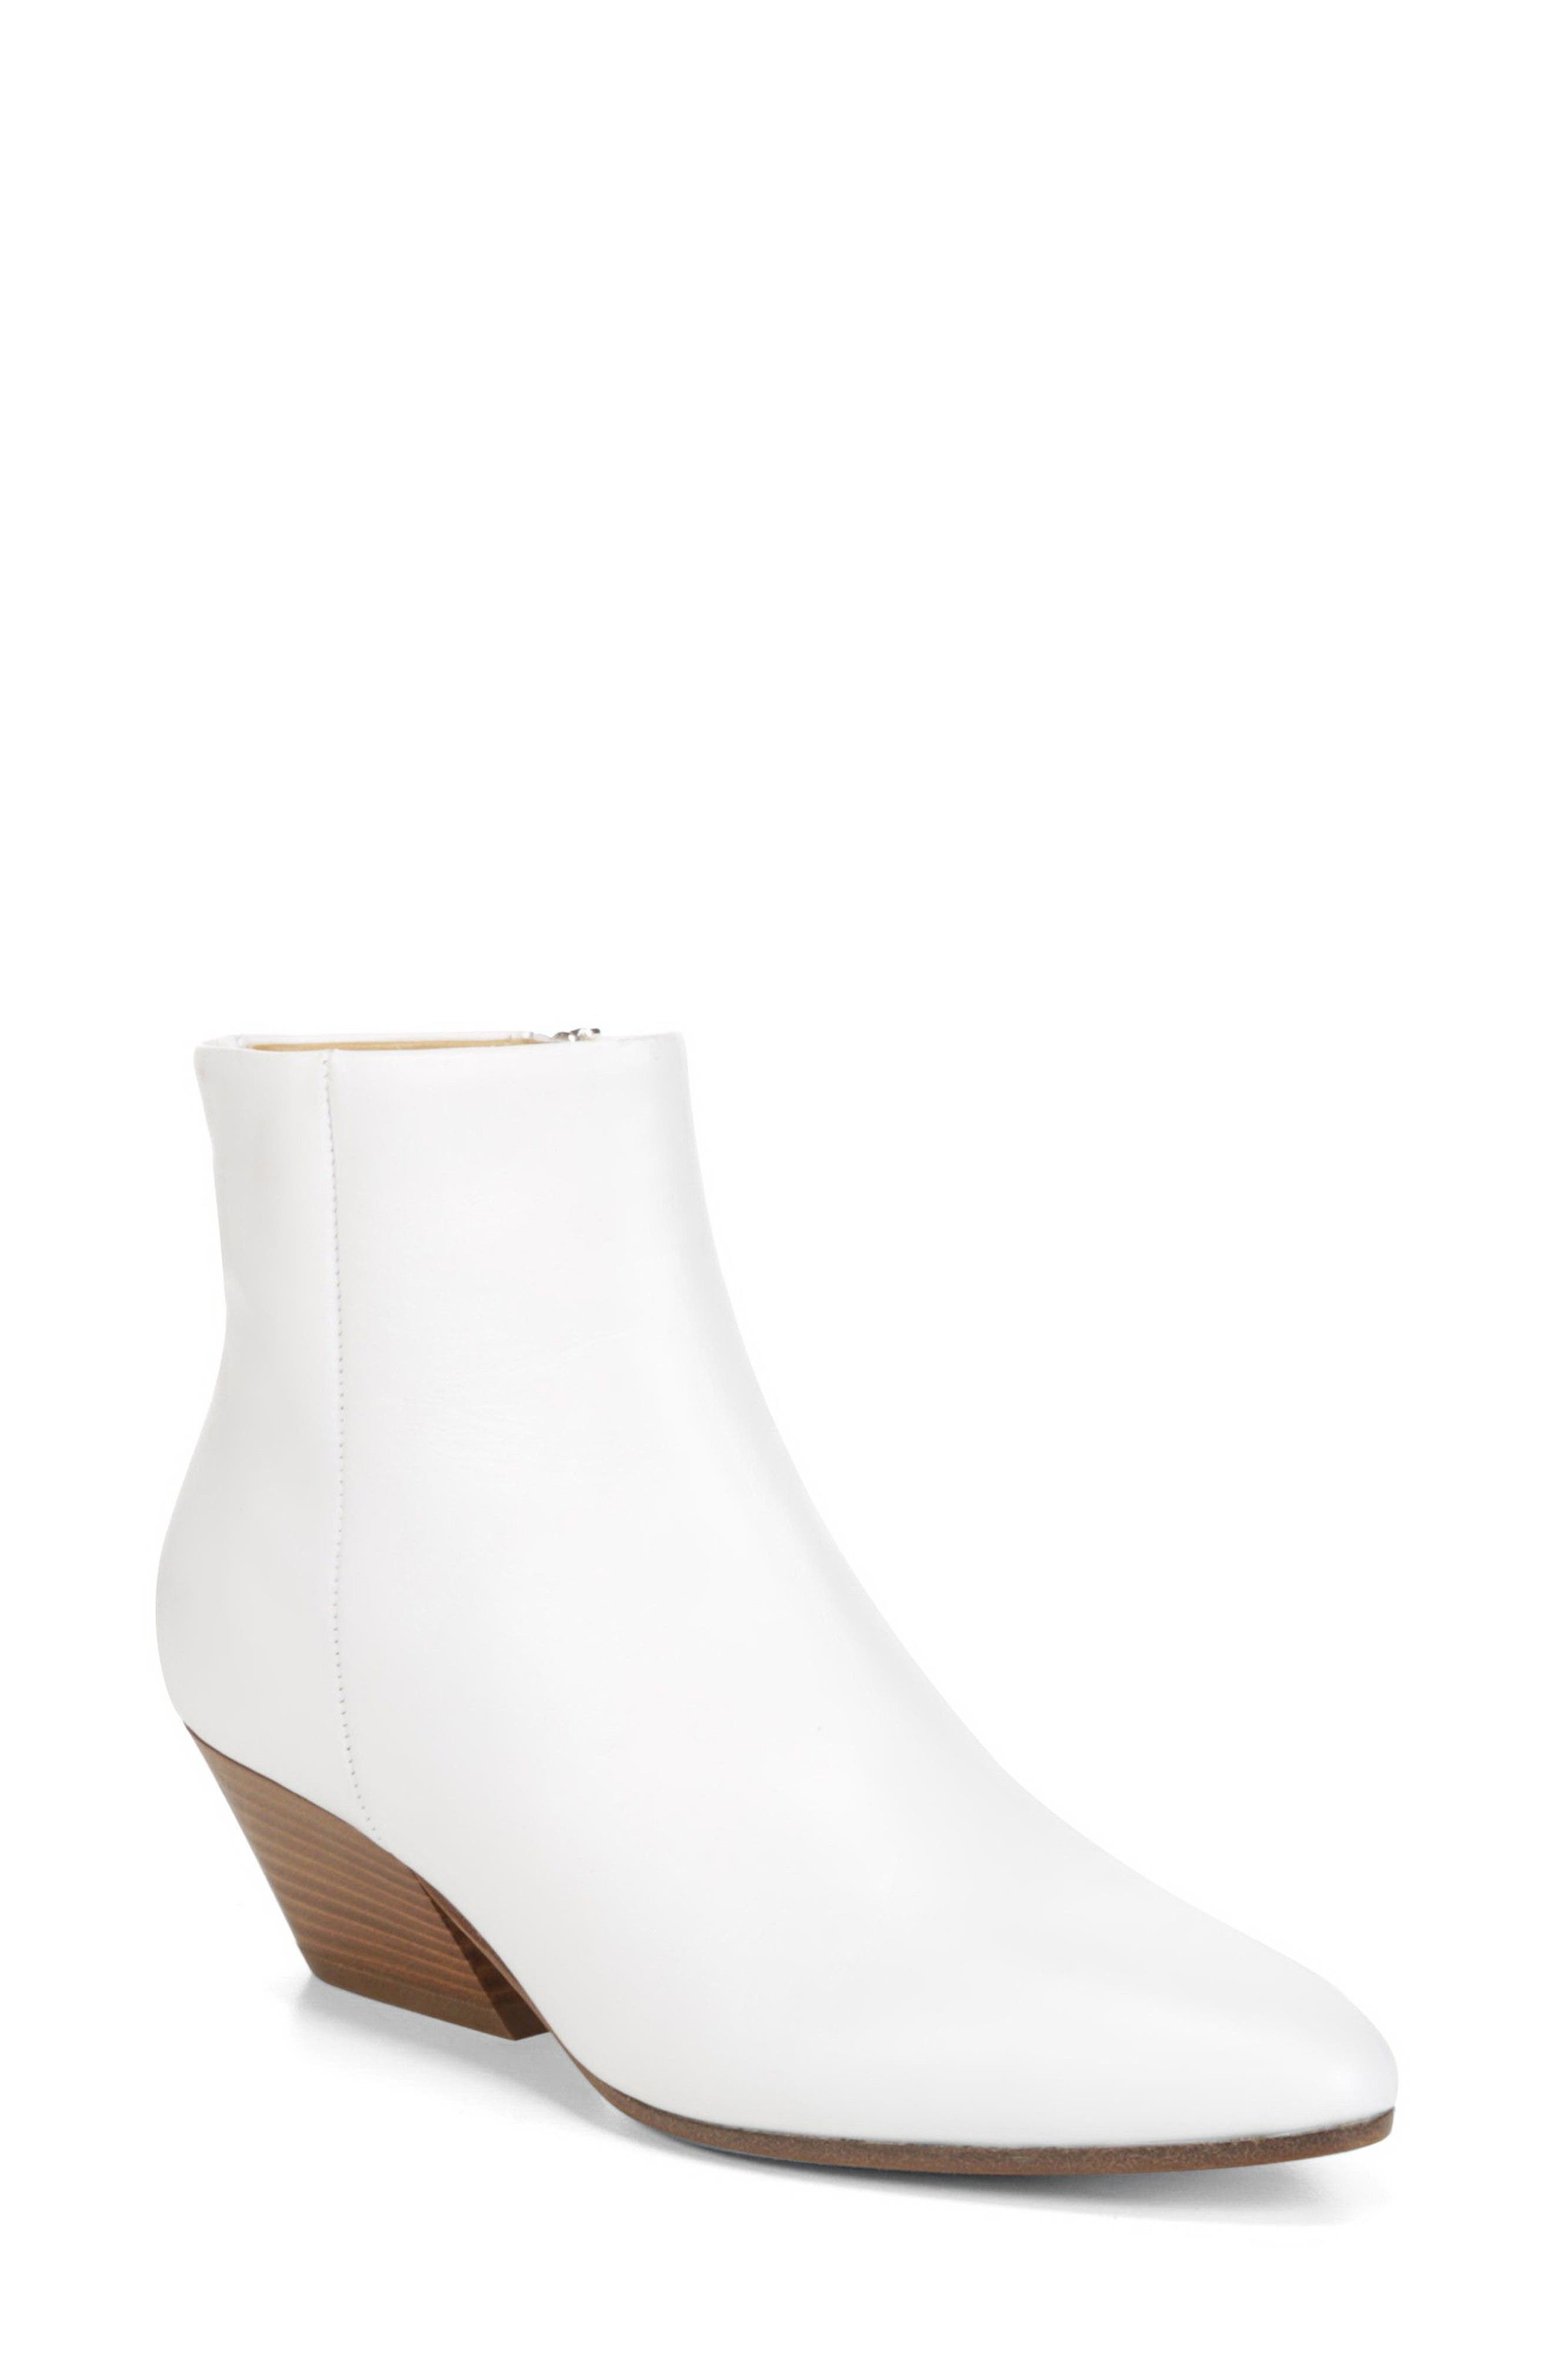 Vaughn Bootie,                         Main,                         color, Optic White Leather